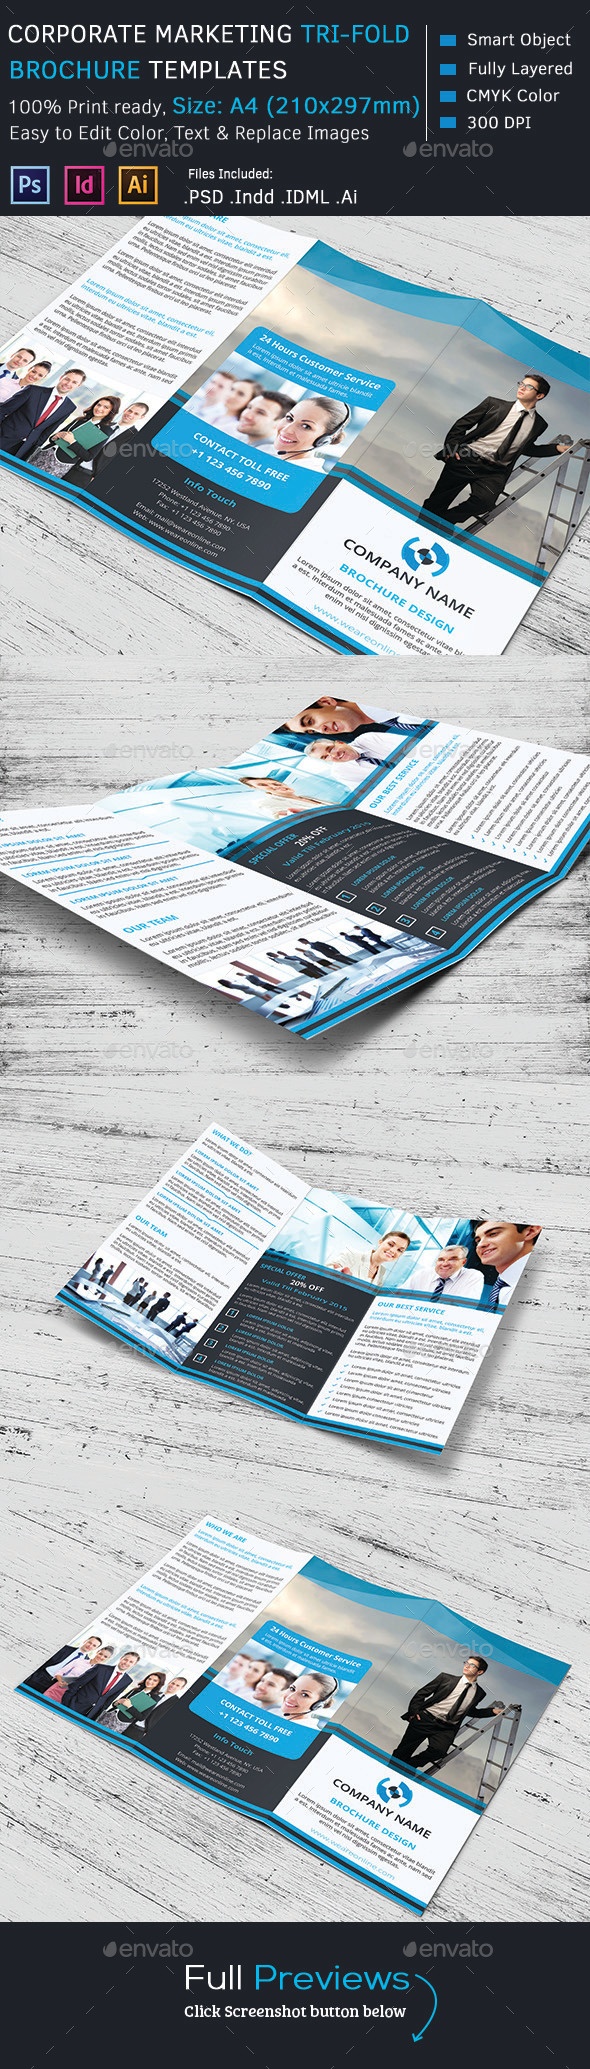 GraphicRiver Corporate Marketing Tri-Fold Brochure 10229062